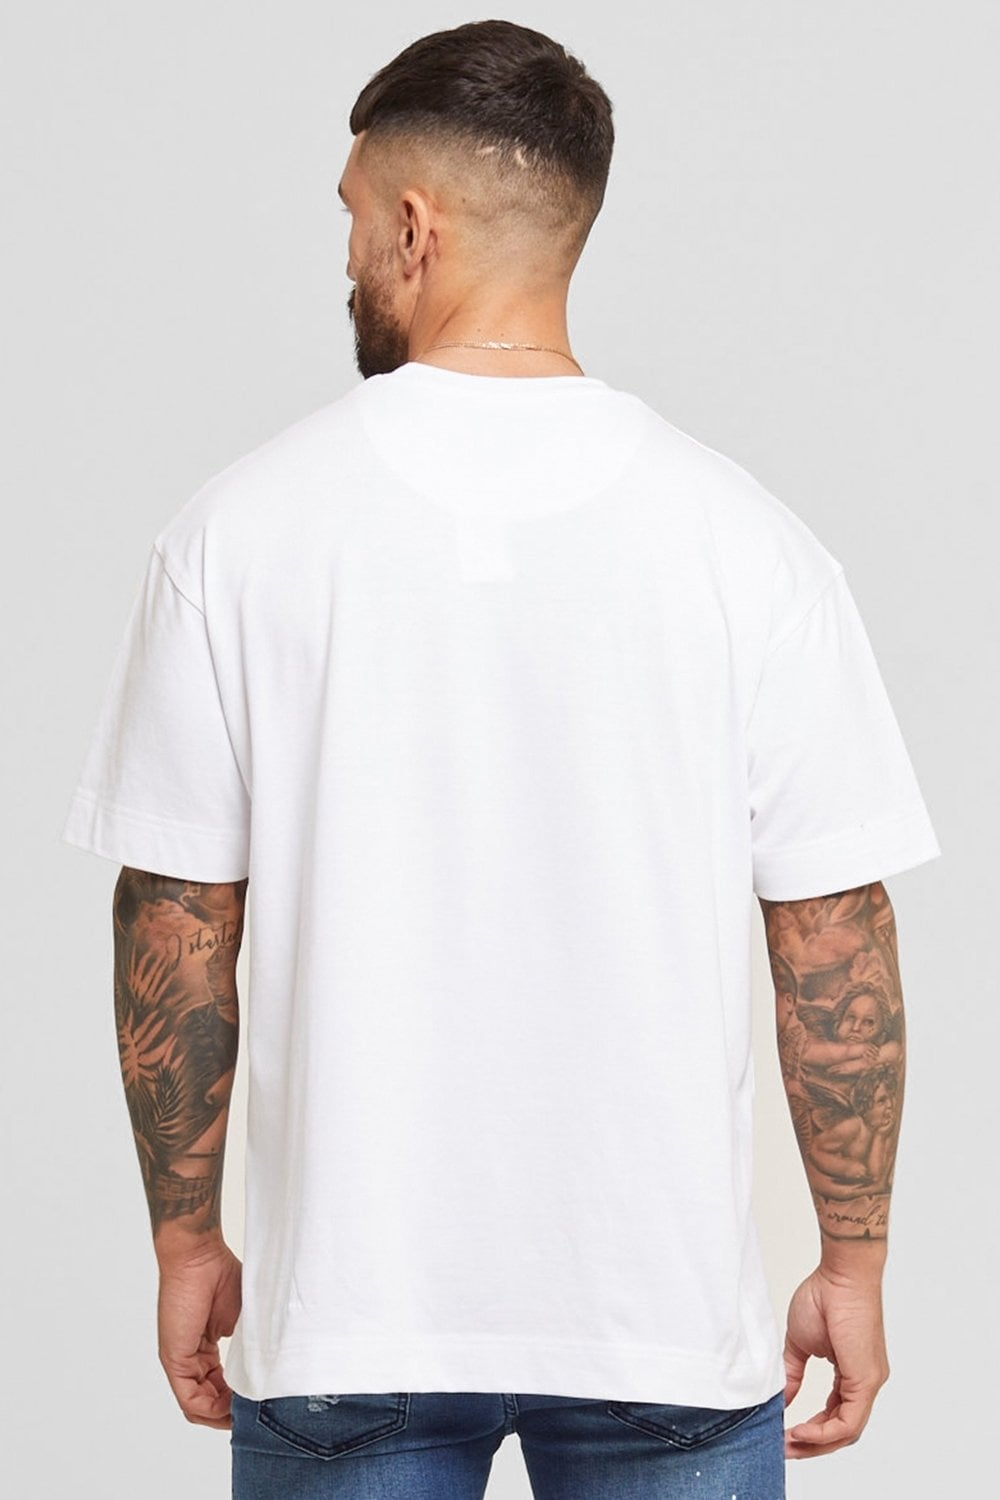 Good For Nothing Oversized Surge Tee - White - 2